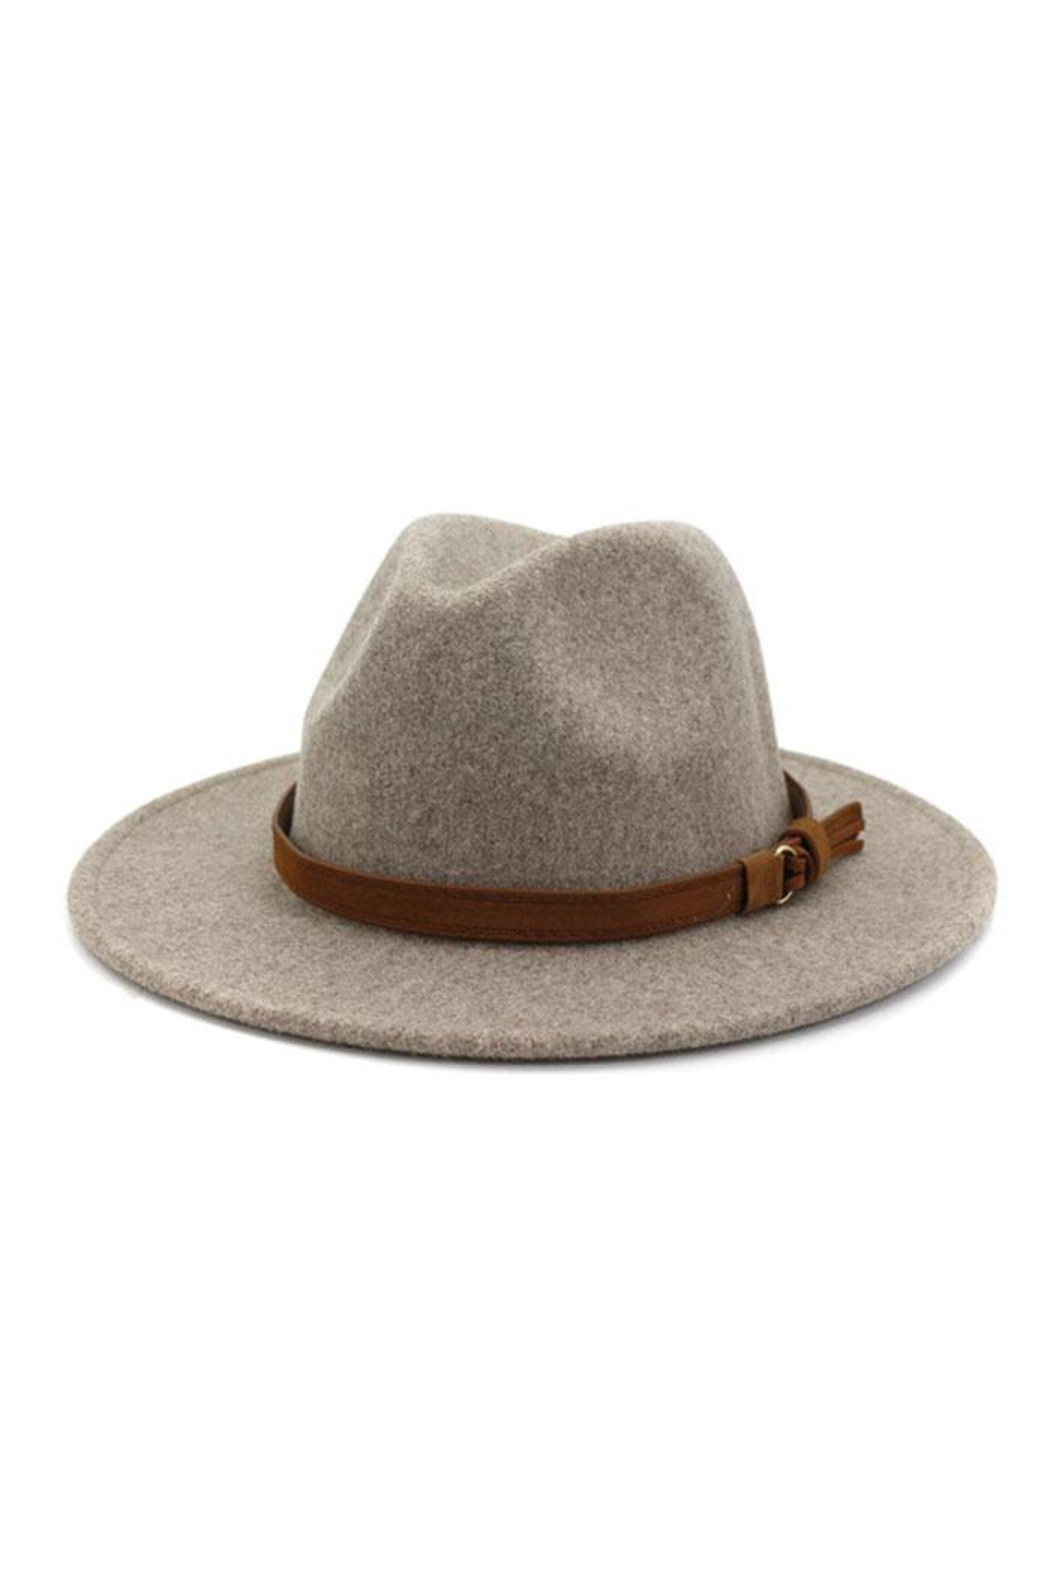 Nadya's Closet Brown Casual Belt Trendy Panama Hat - Front Cropped Image